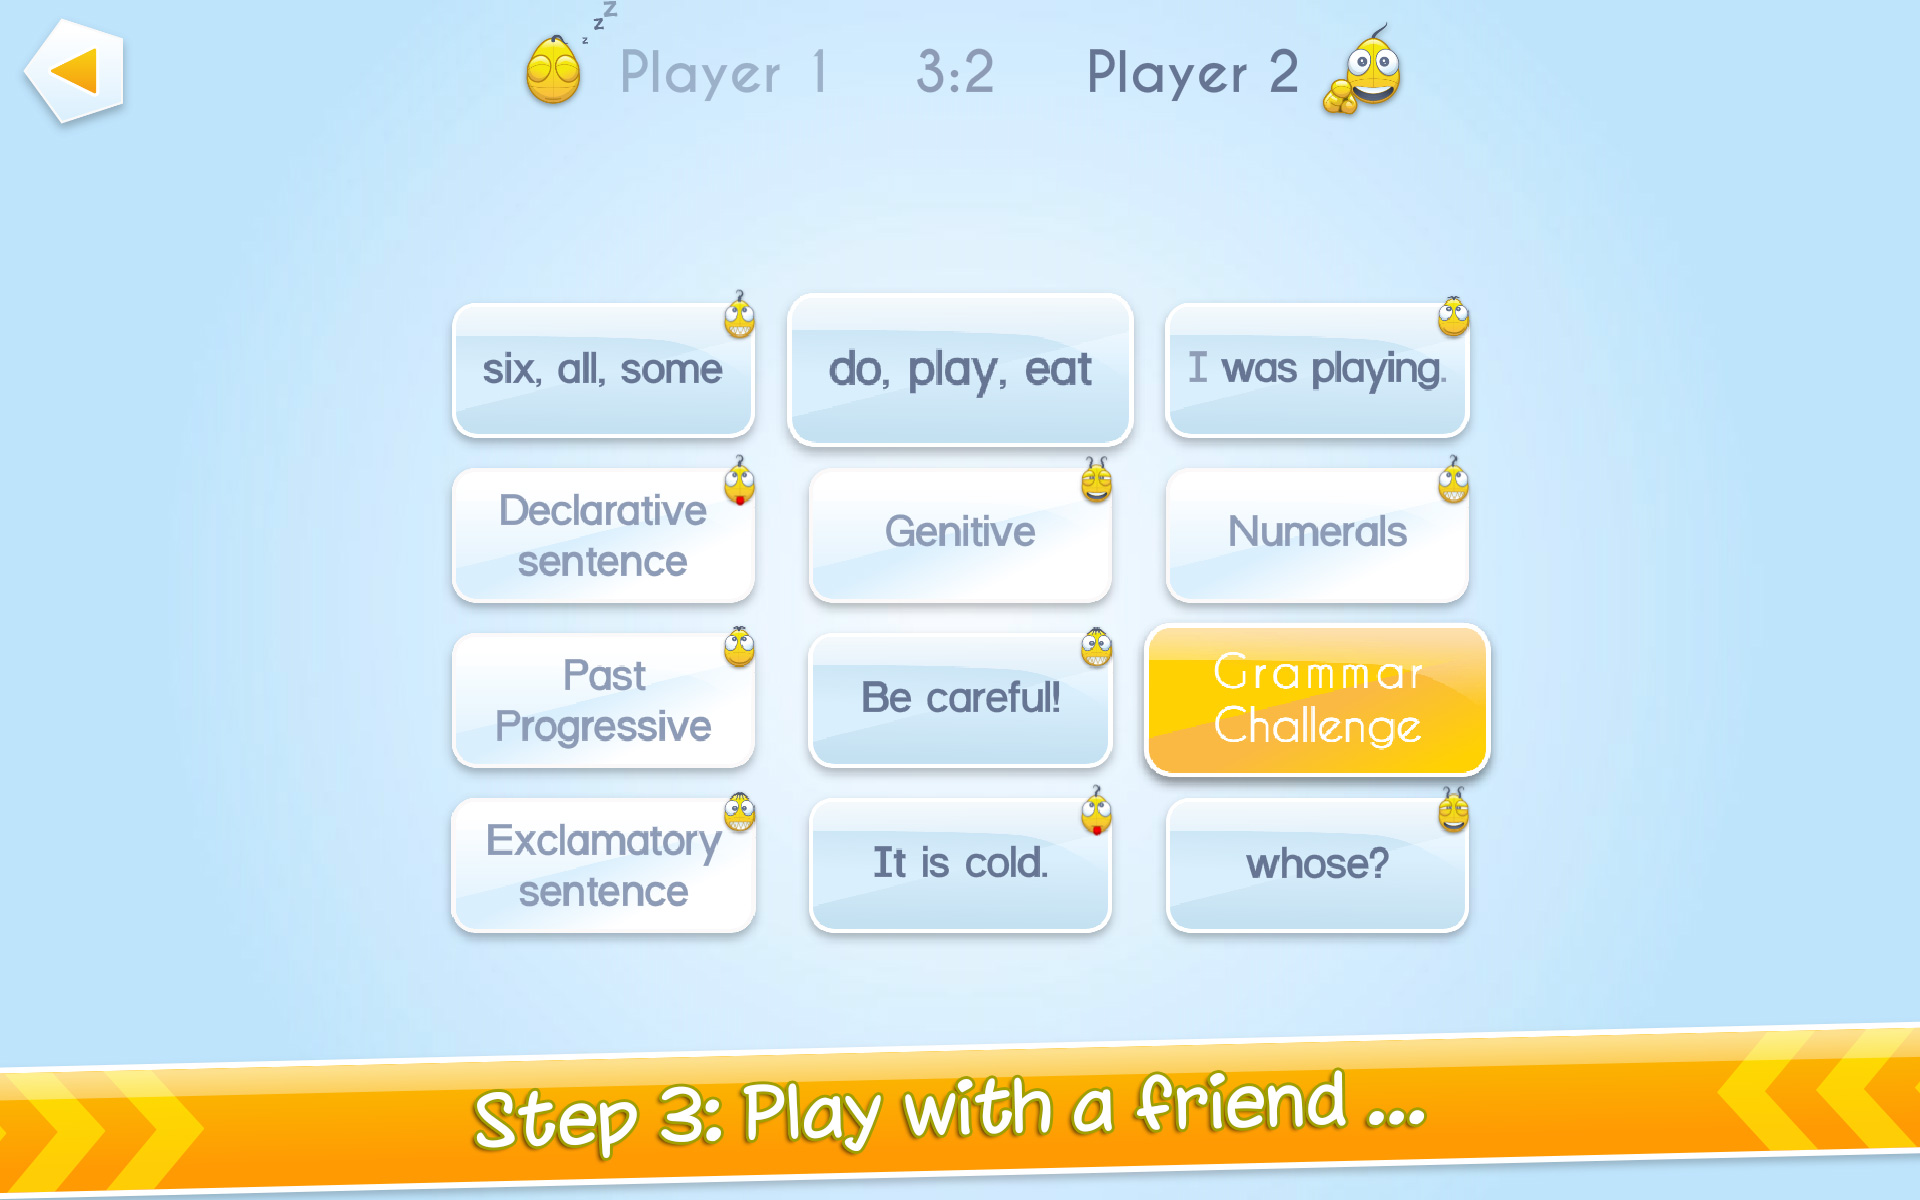 Android_Grammar_Challenge_Train_Your_English_Skills_app_for_kids_Jan_Essig_6